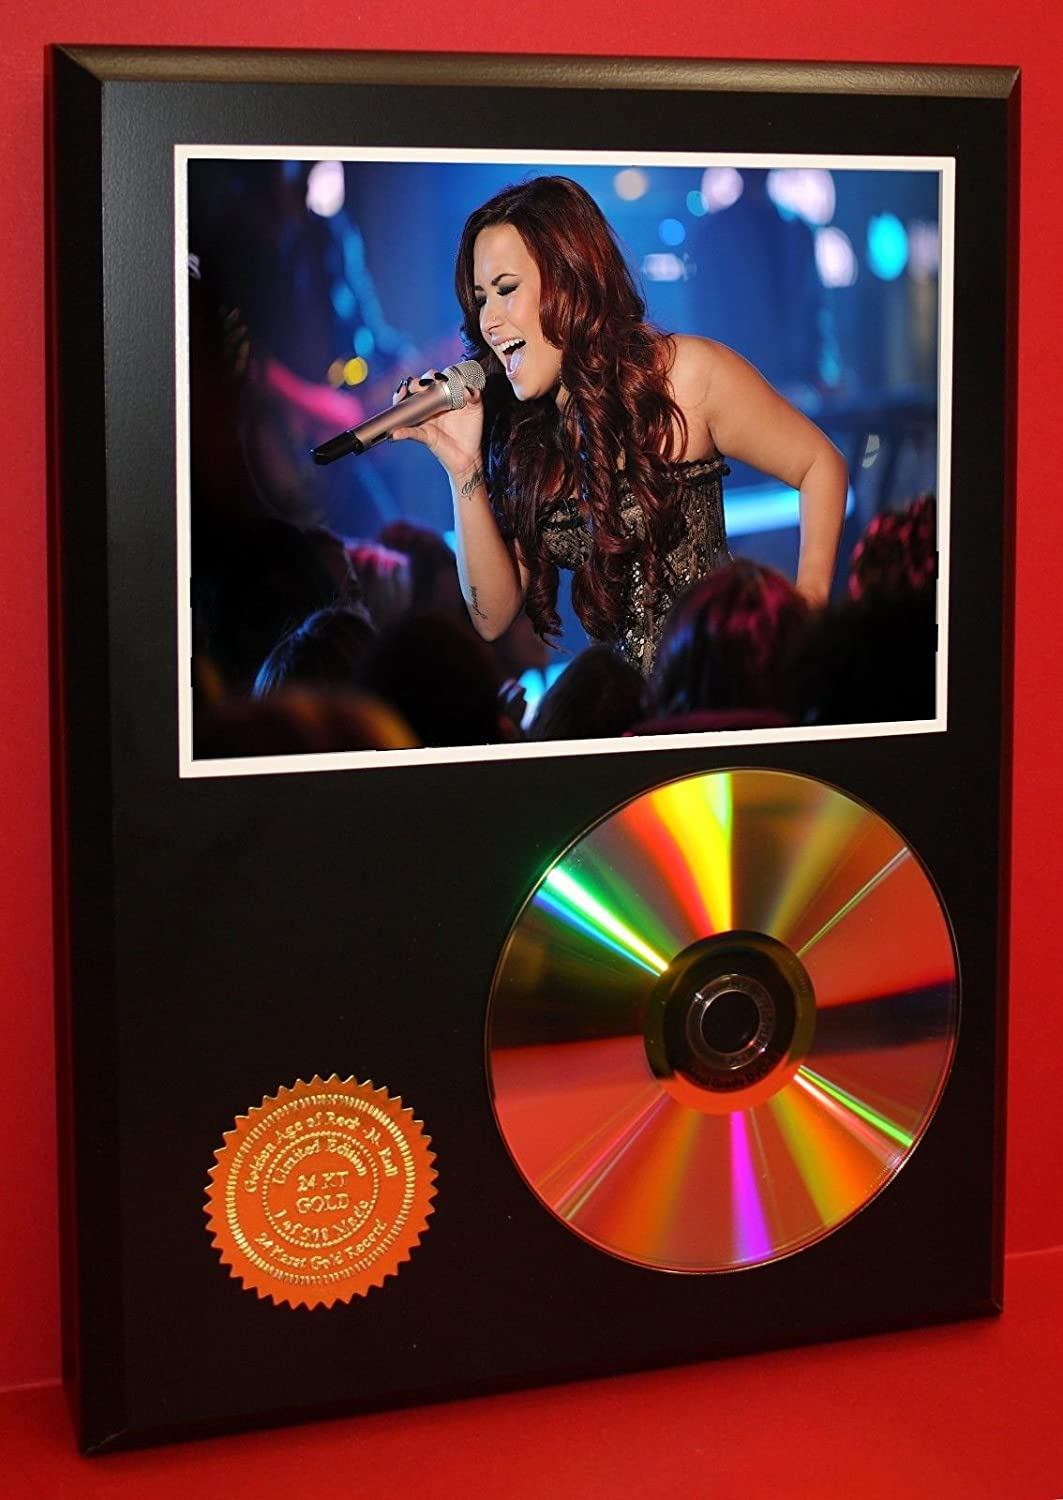 Demi Lovato Limited Edition 24KT Gold Cd Disc Collectible Award Quality Display